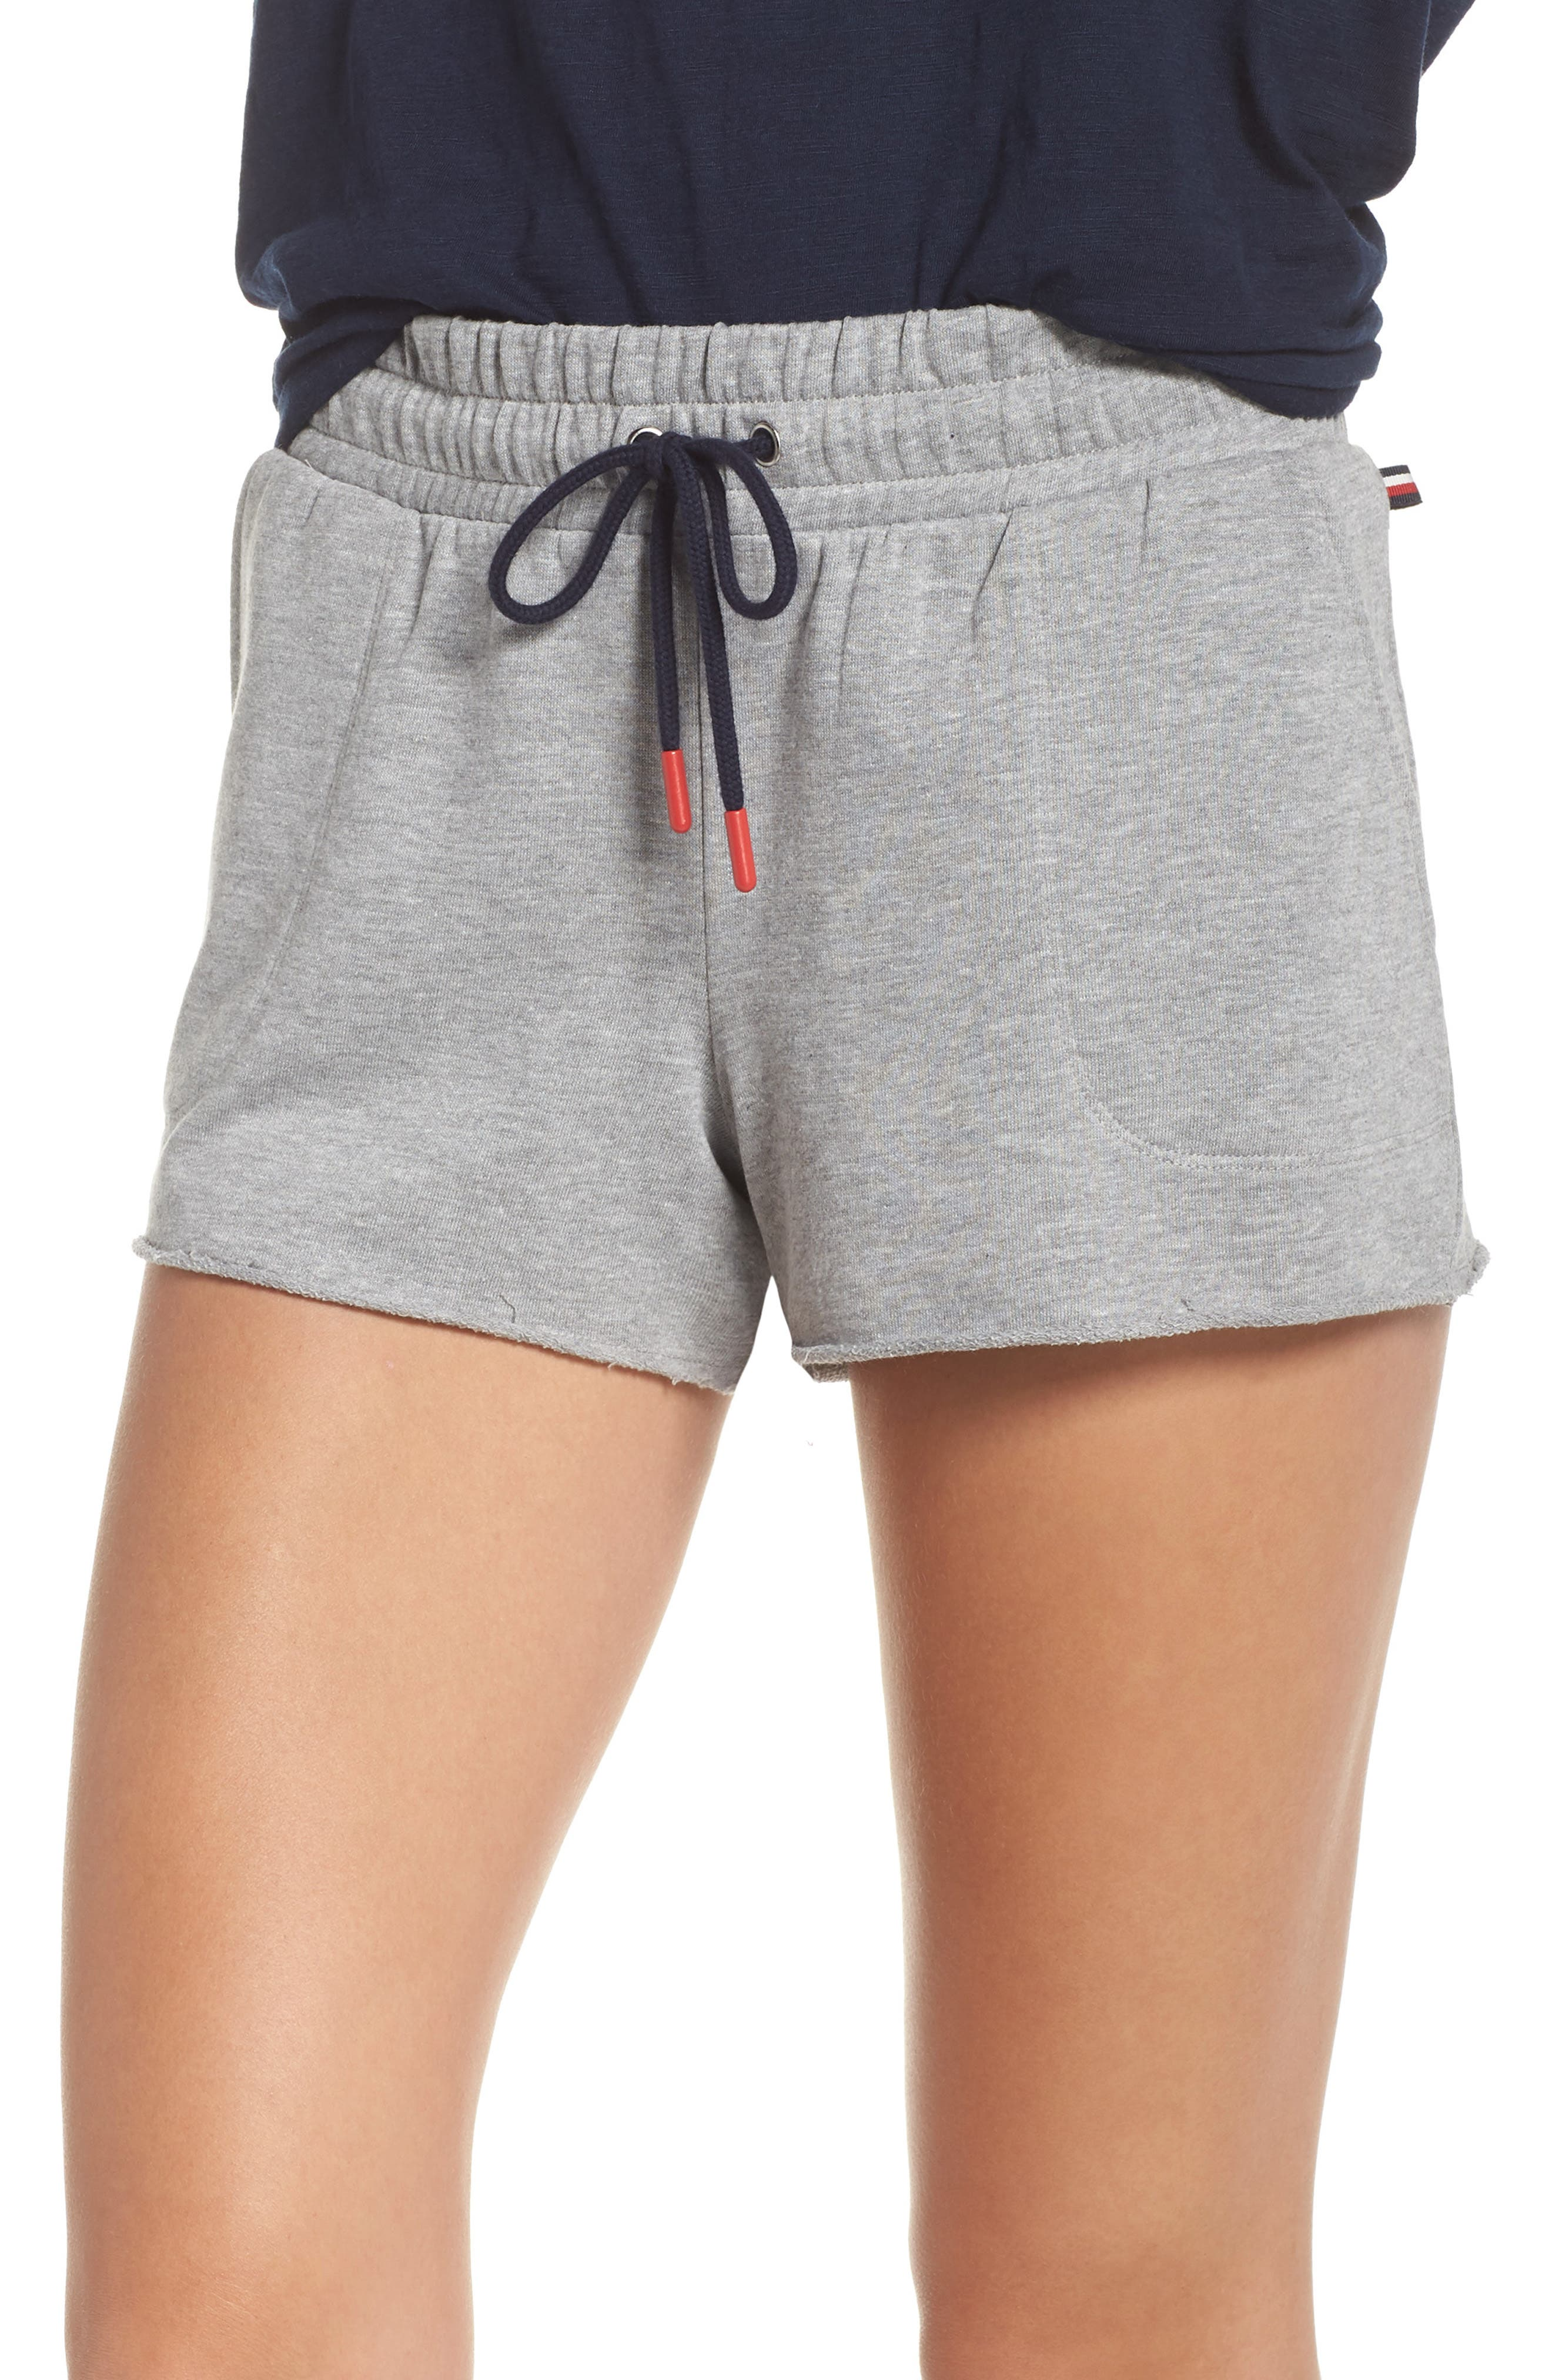 Raw Edge Pajama Shorts,                             Main thumbnail 1, color,                             020